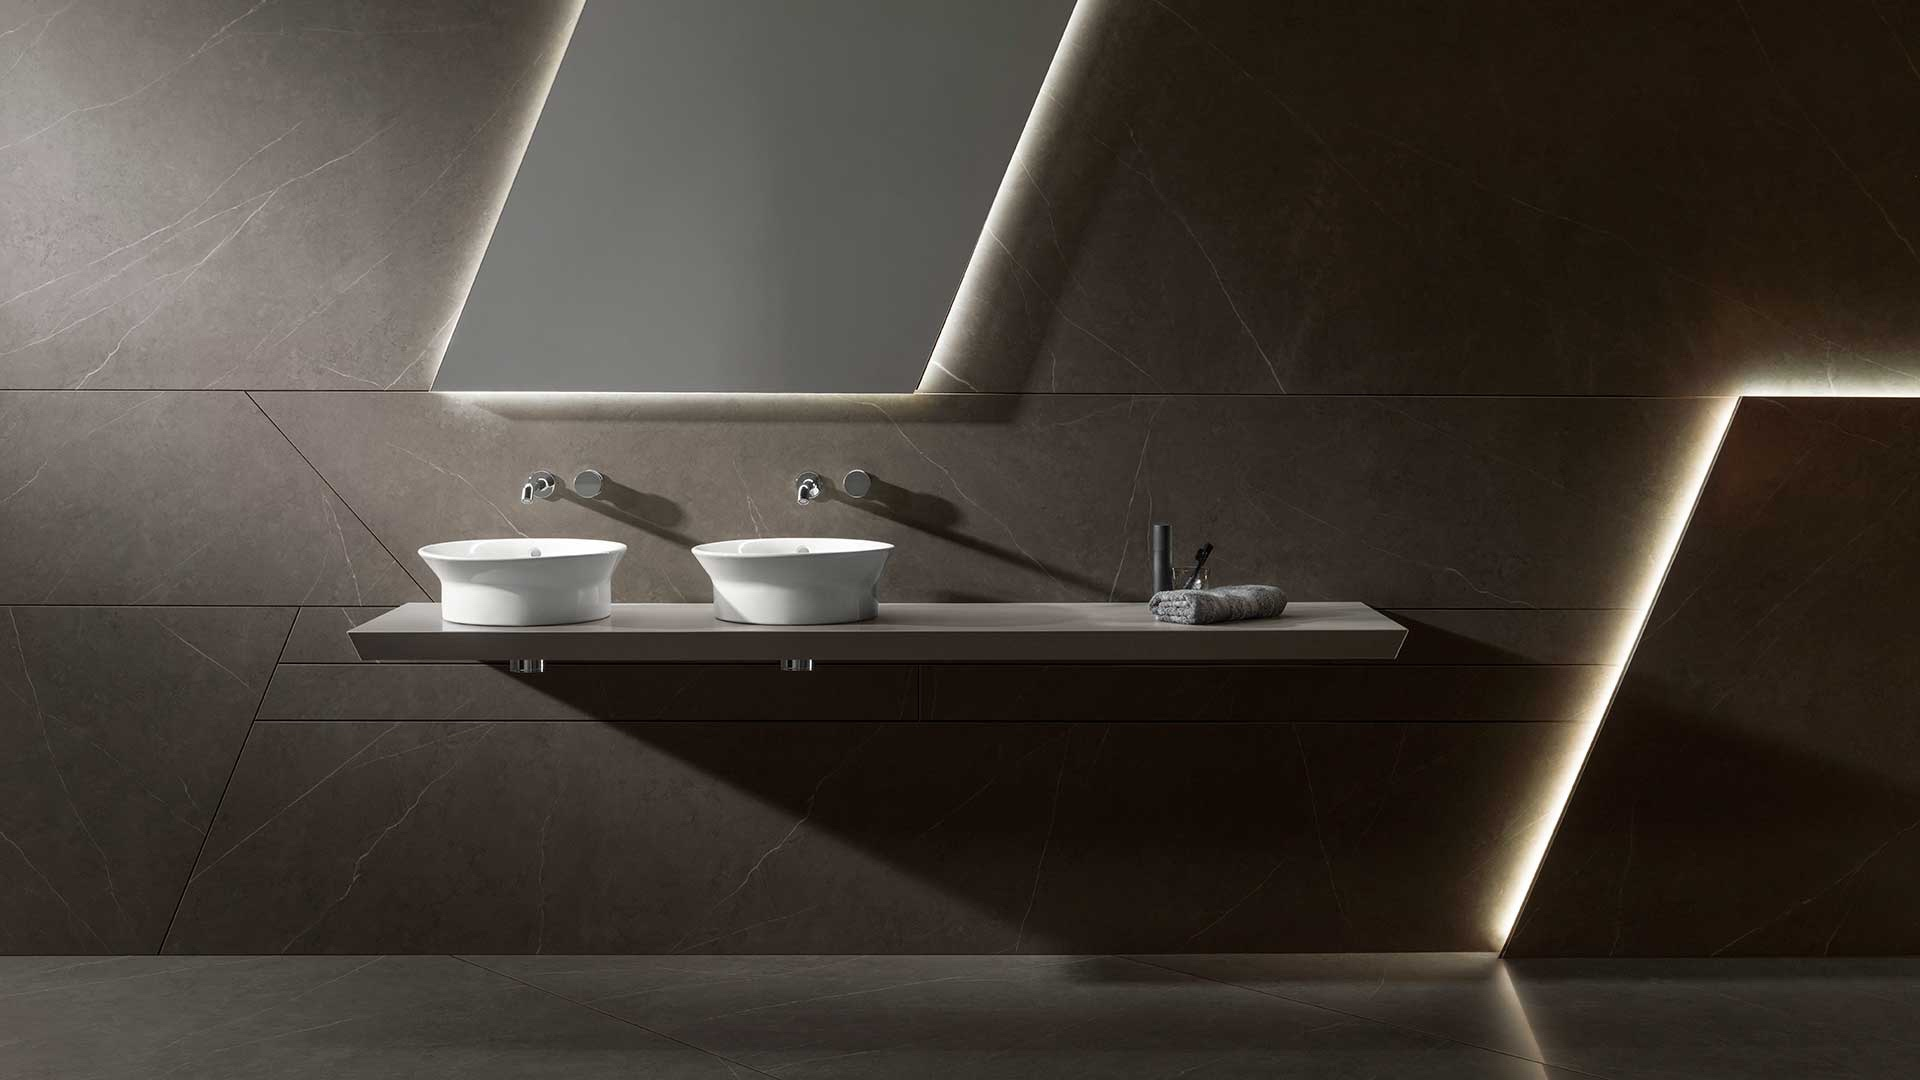 Inspirational Kitchen And Bathroom Wares And Styles For 2019 By Porcelanosa Grupo